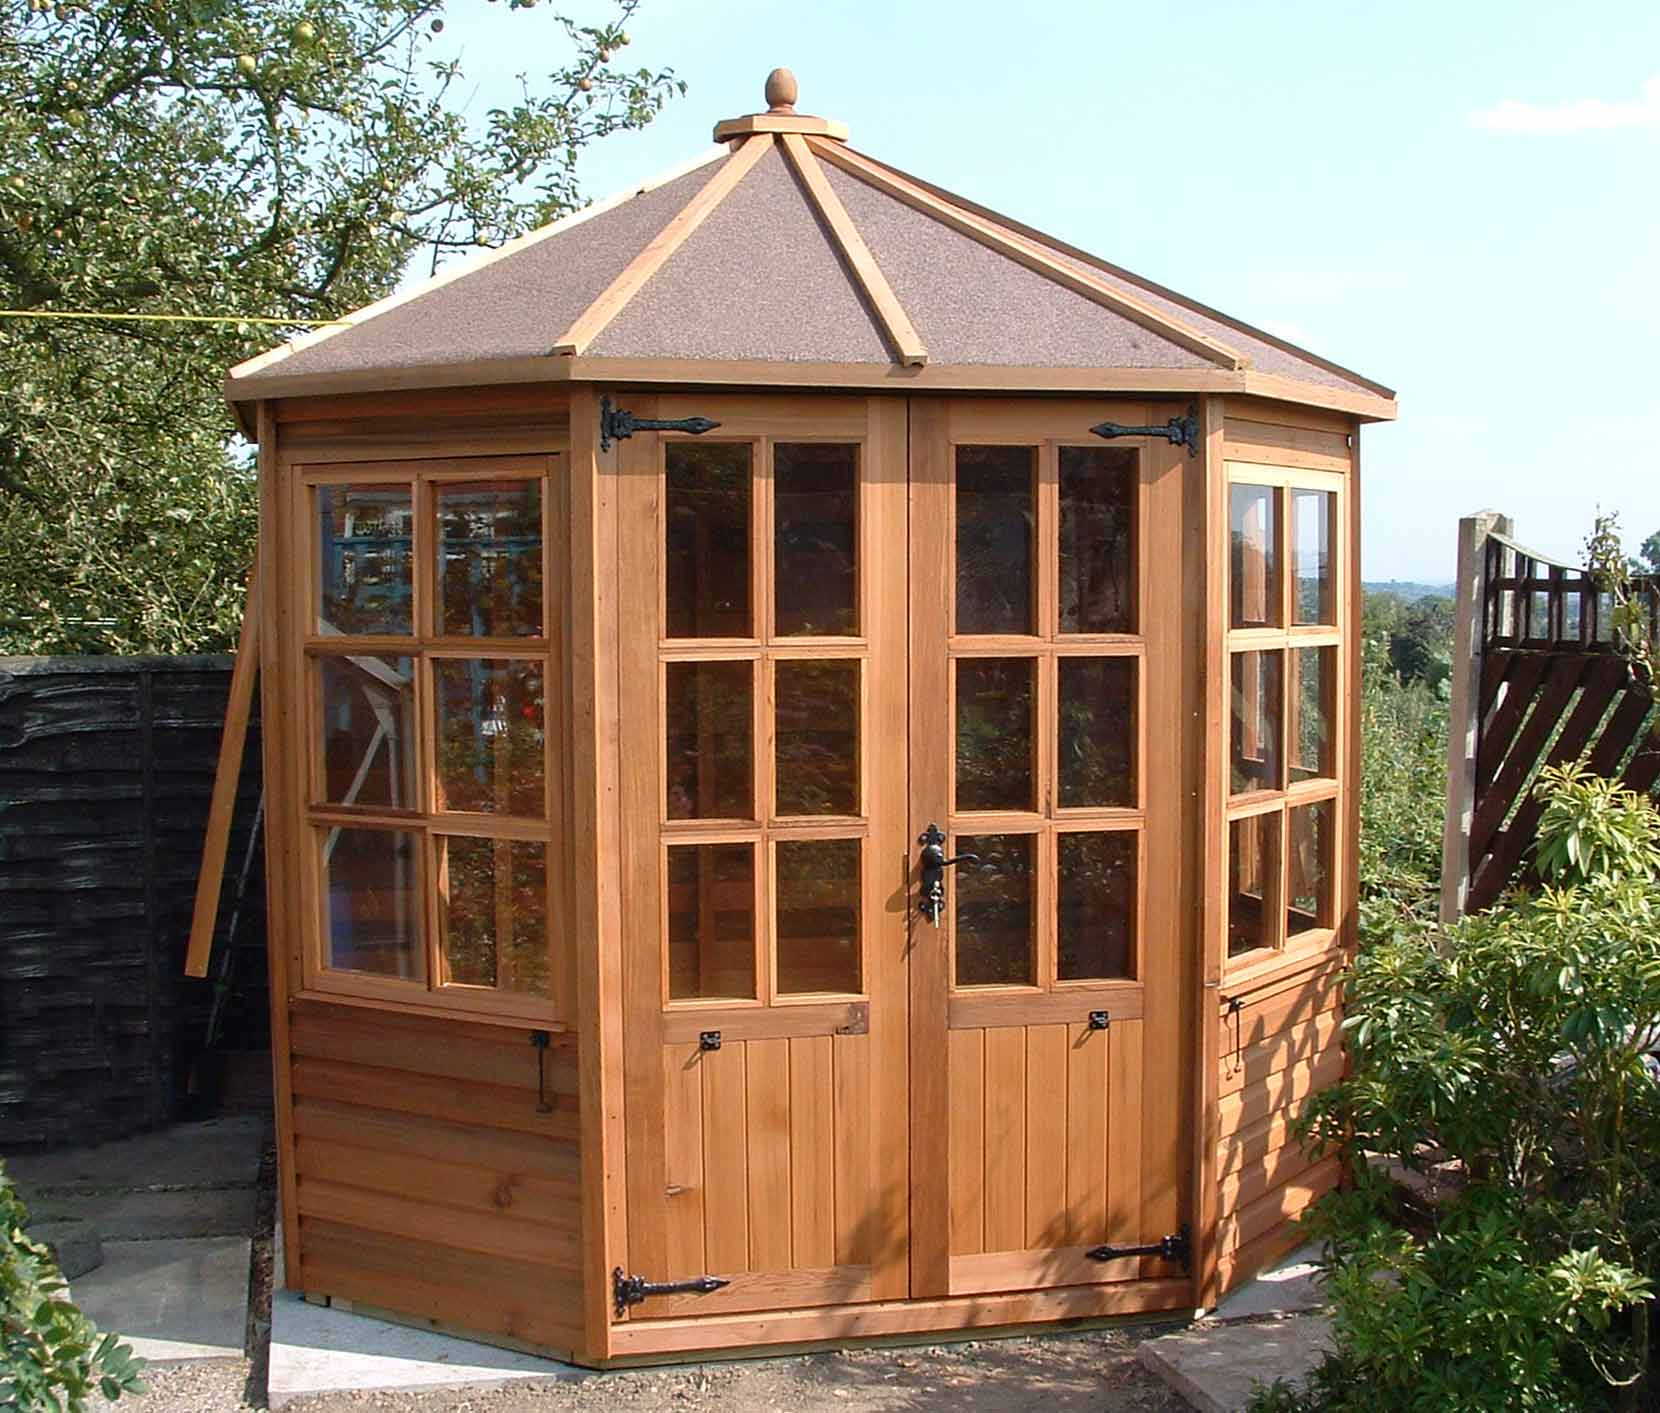 2ft x 6ft x 5ft Cedar Cedar Tall Coldframe Stained Light Brown